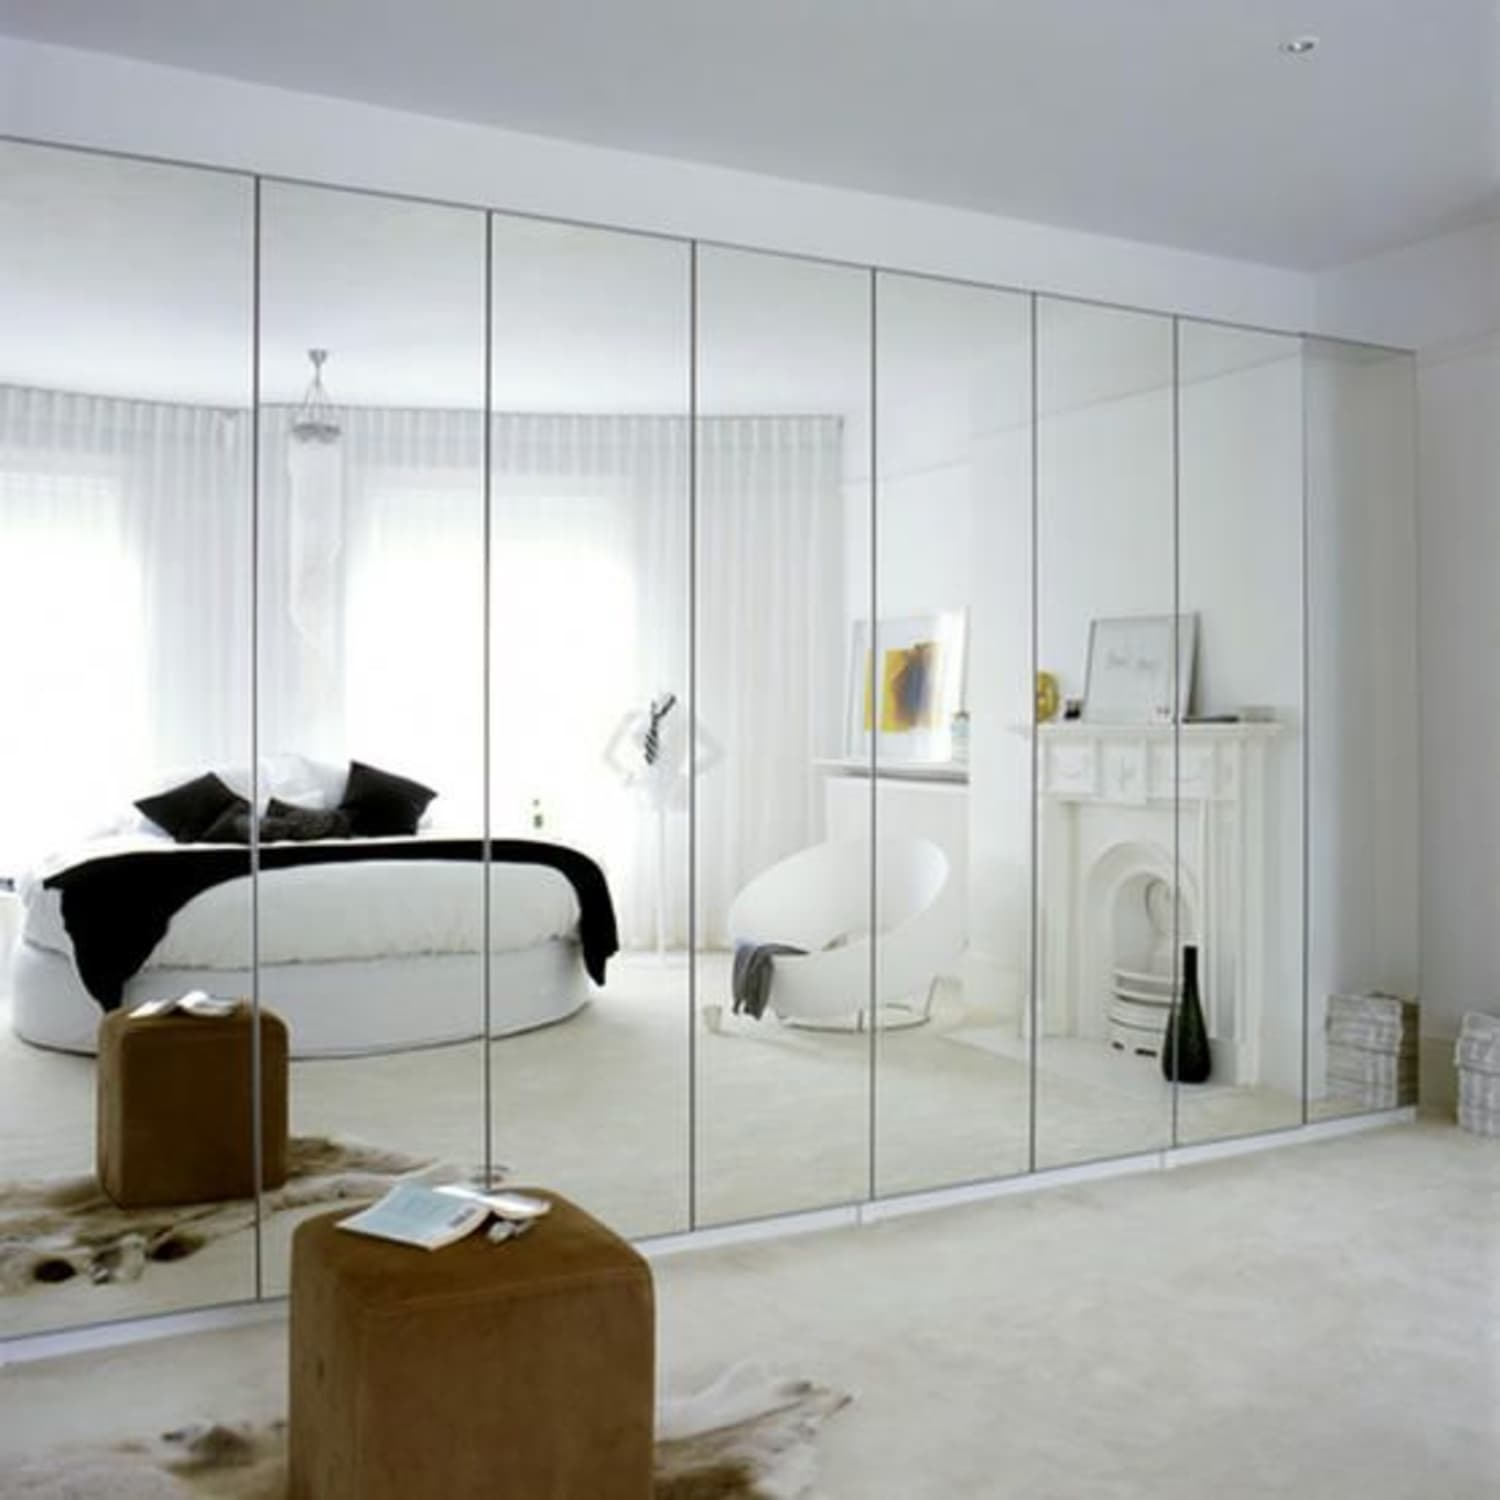 Plagued With Dated Mirrored Walls? 5 Design Ideas To Make